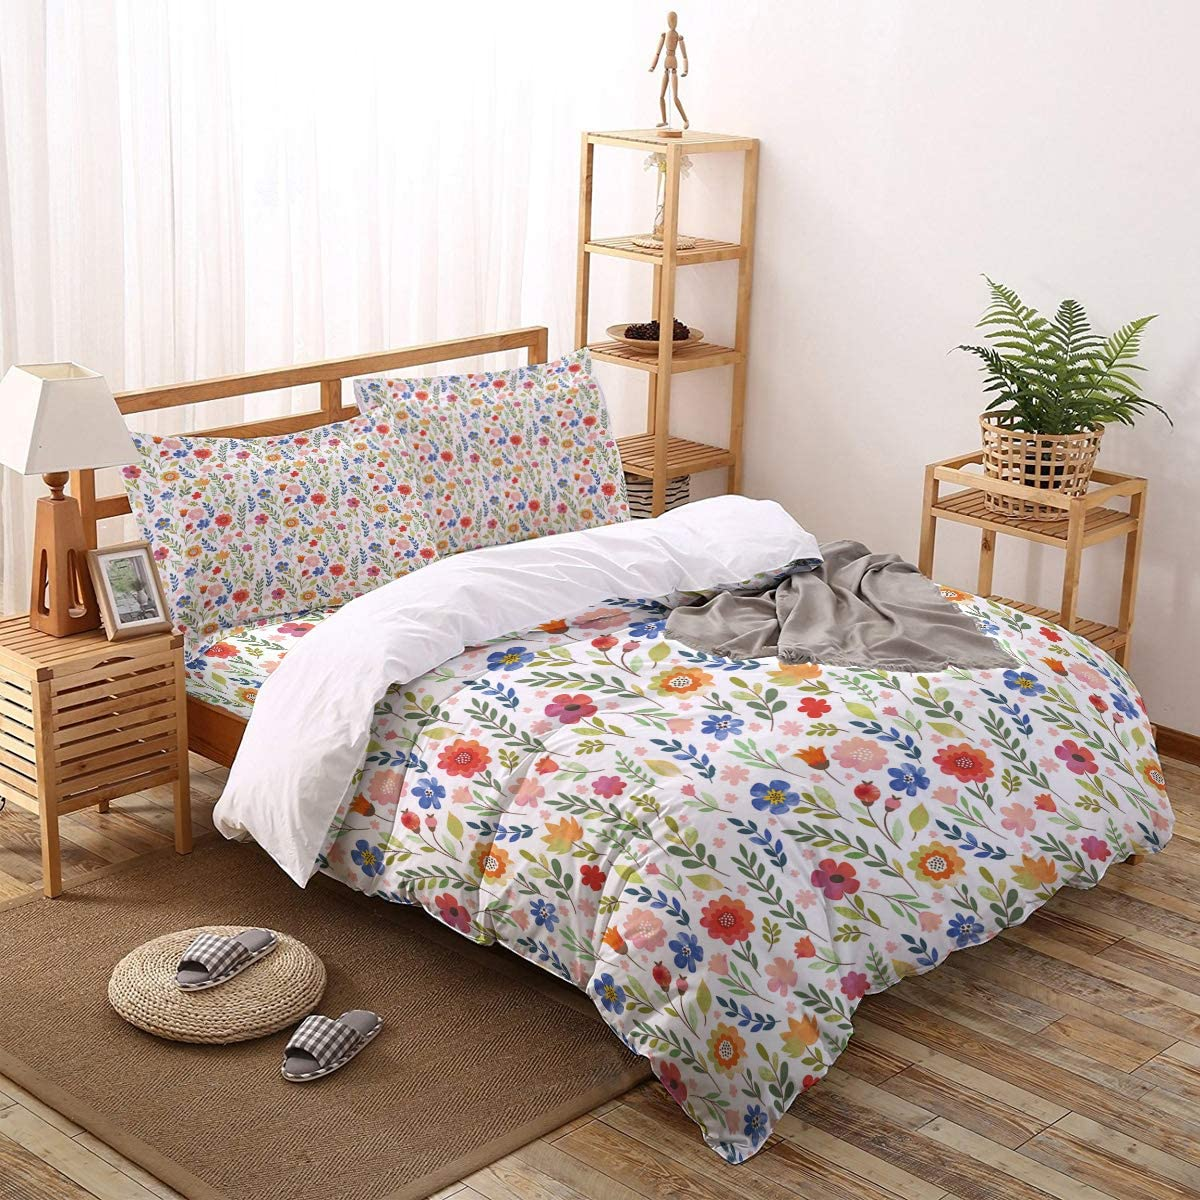 Fangship 4 Pieces Duvet Direct stock discount Cover Bargain Bedding Cute Spring Girl Set Style